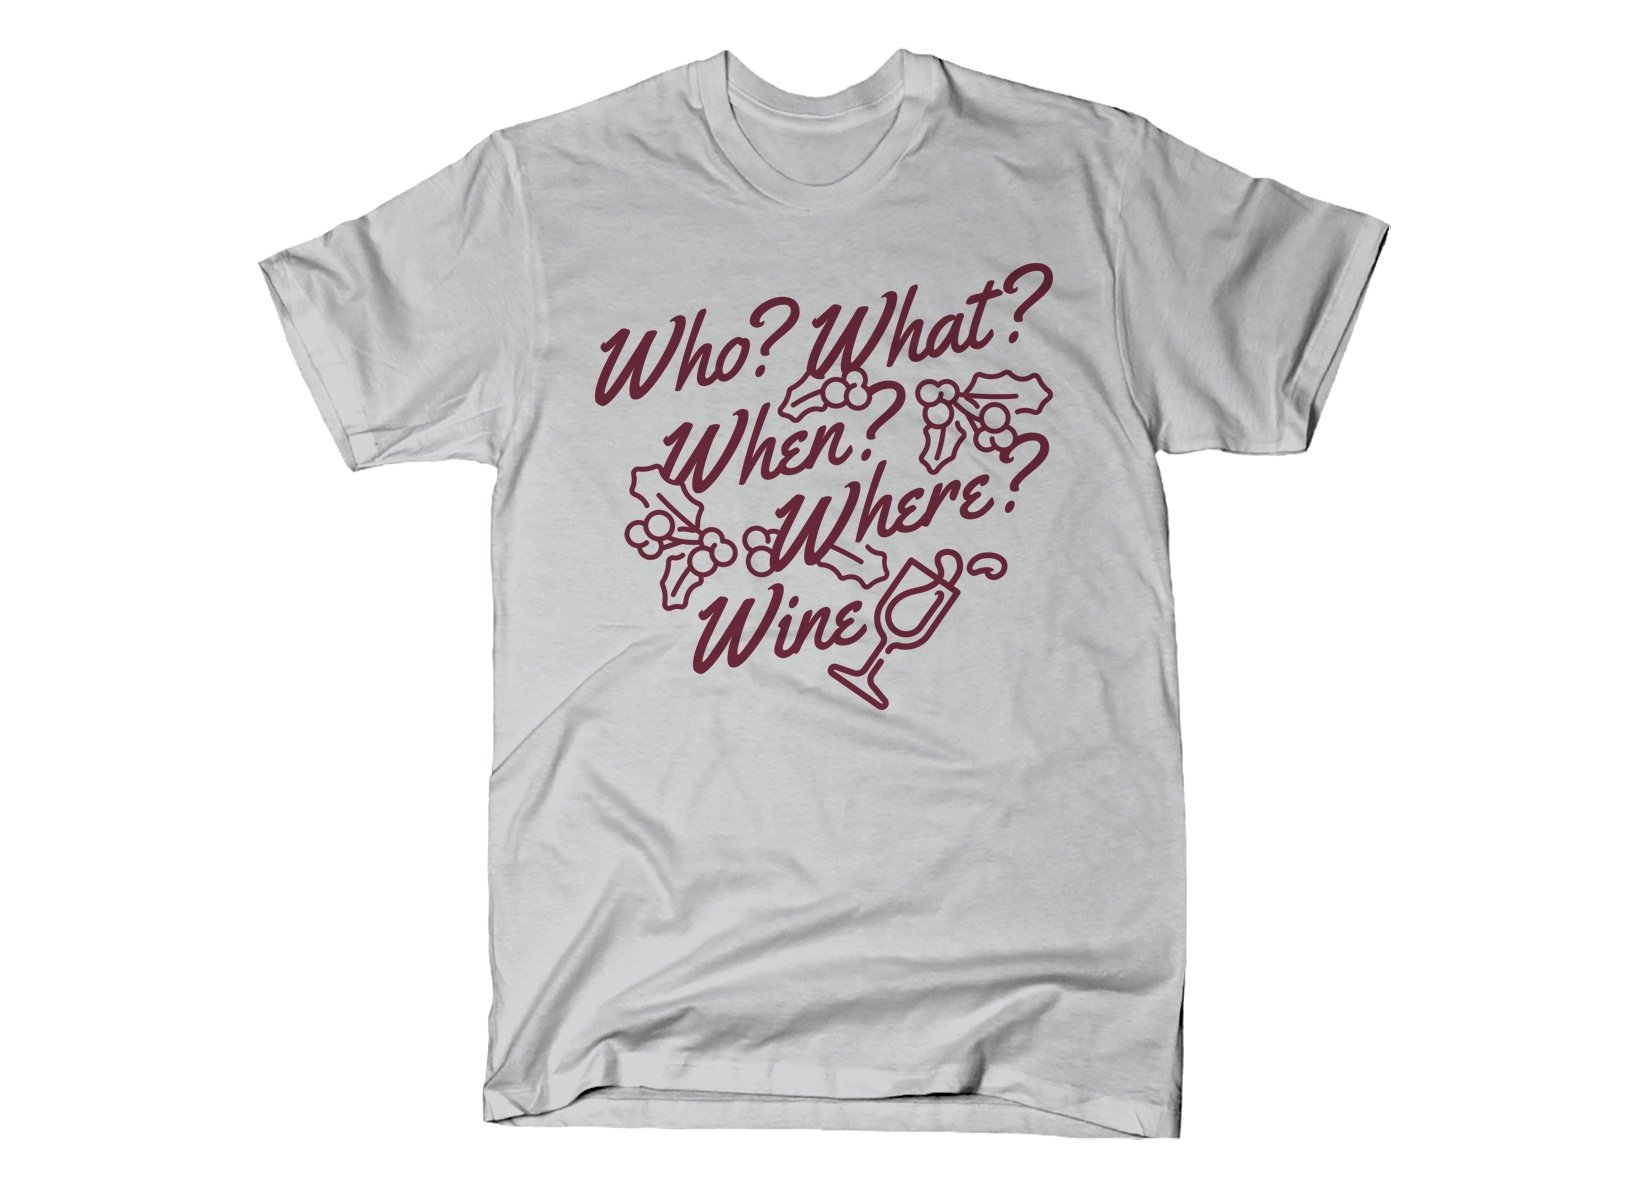 Who? What? When? Where? Wine? on Mens T-Shirt